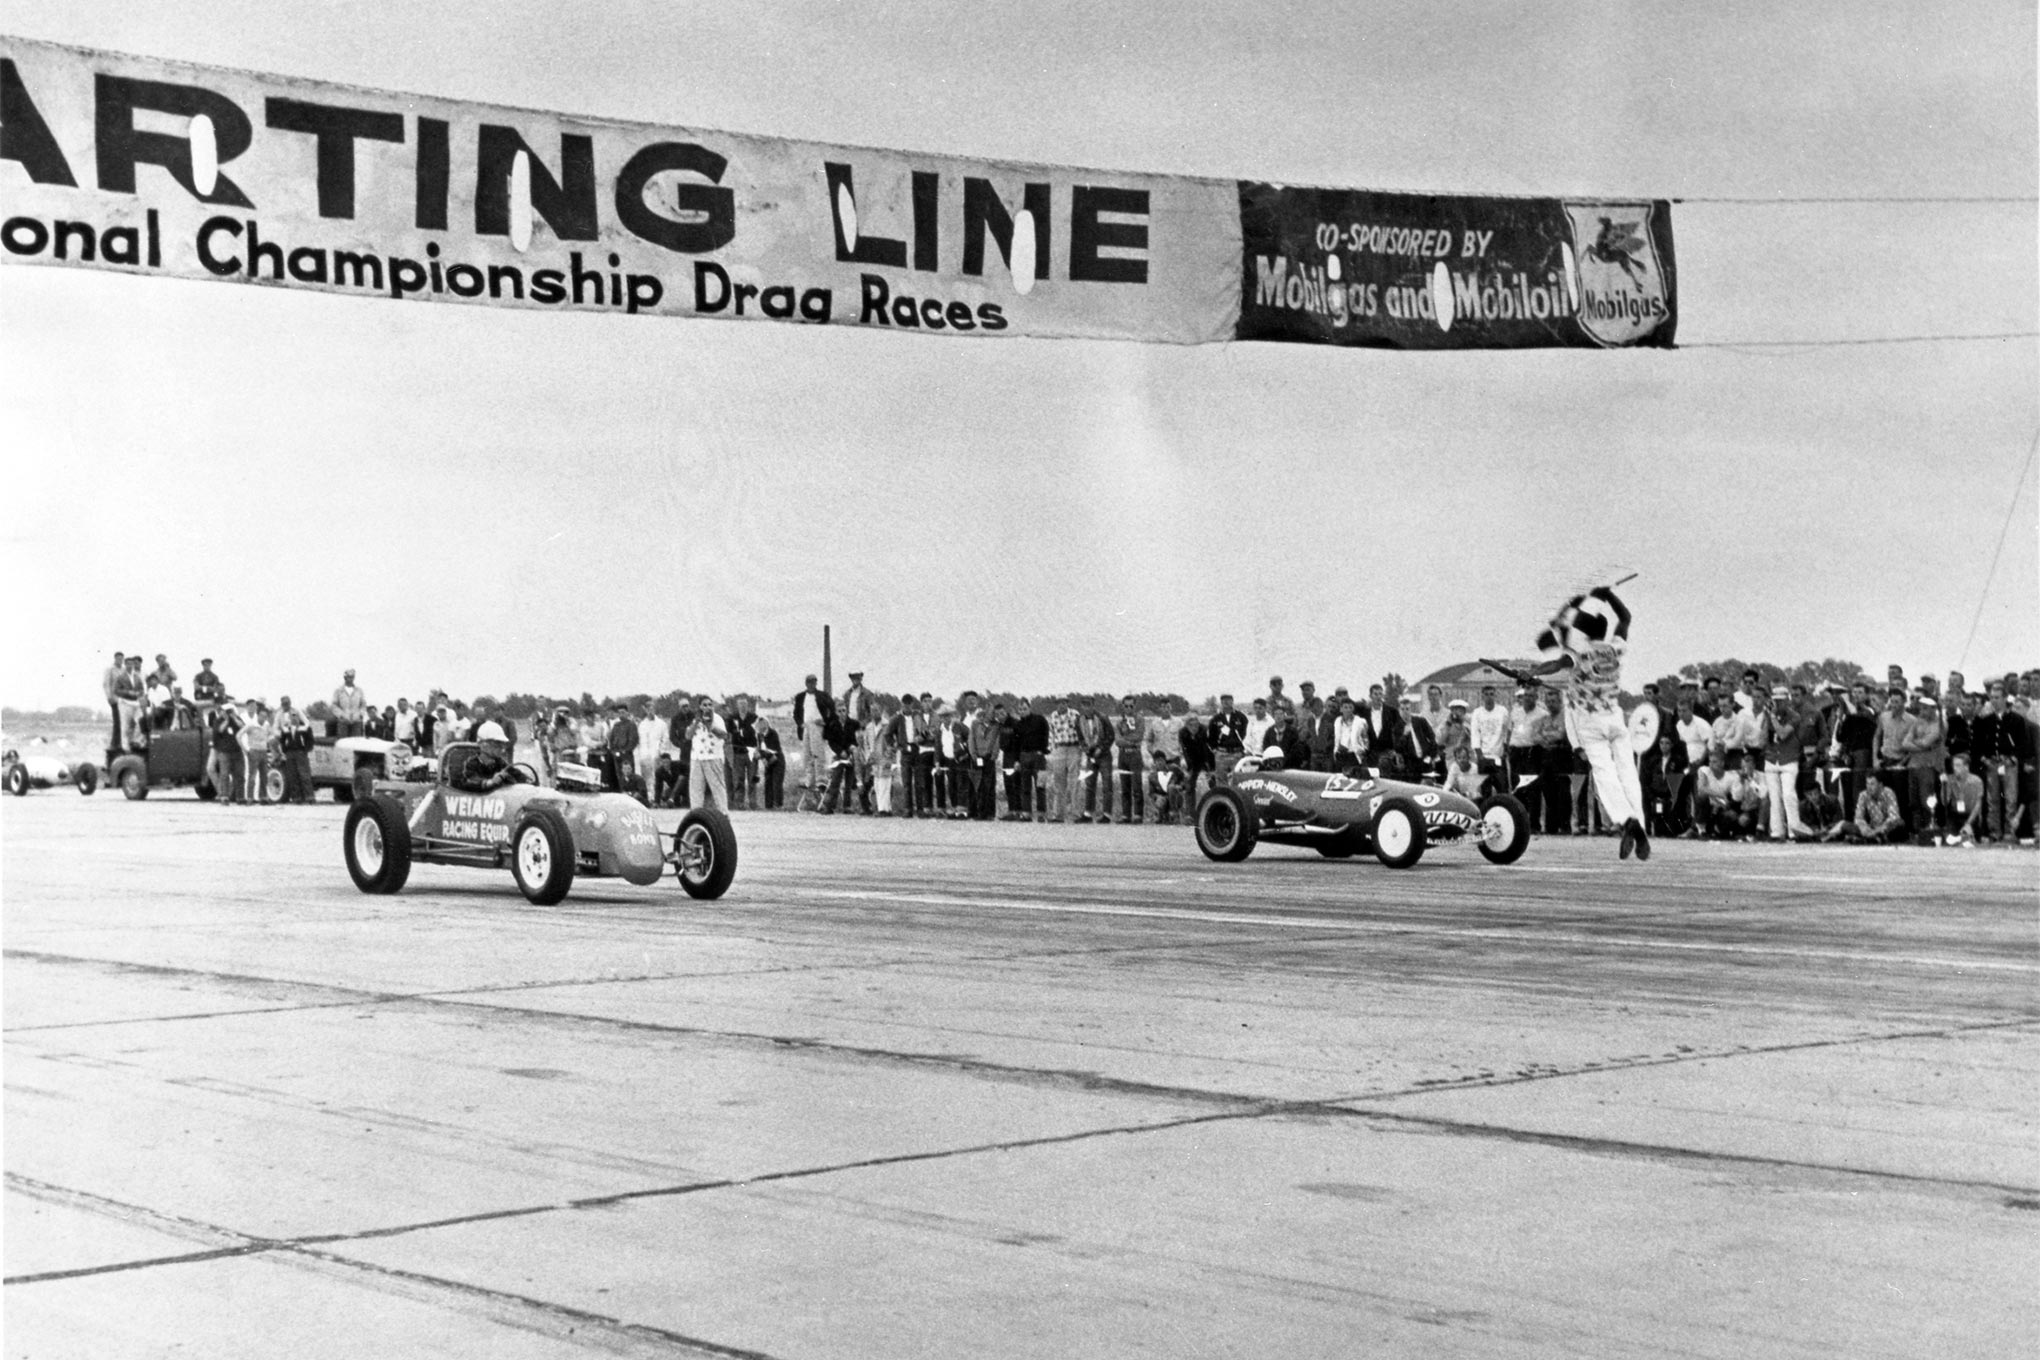 Bustle Bomb squaring off against the Hopper-Hensley entry at the Inaugural NHRA National Championship in Great Bend, Kansas, late September, 1955. Rain that weekend postponed eliminations to the NHRA Southwest Regionals late November in Phoenix.